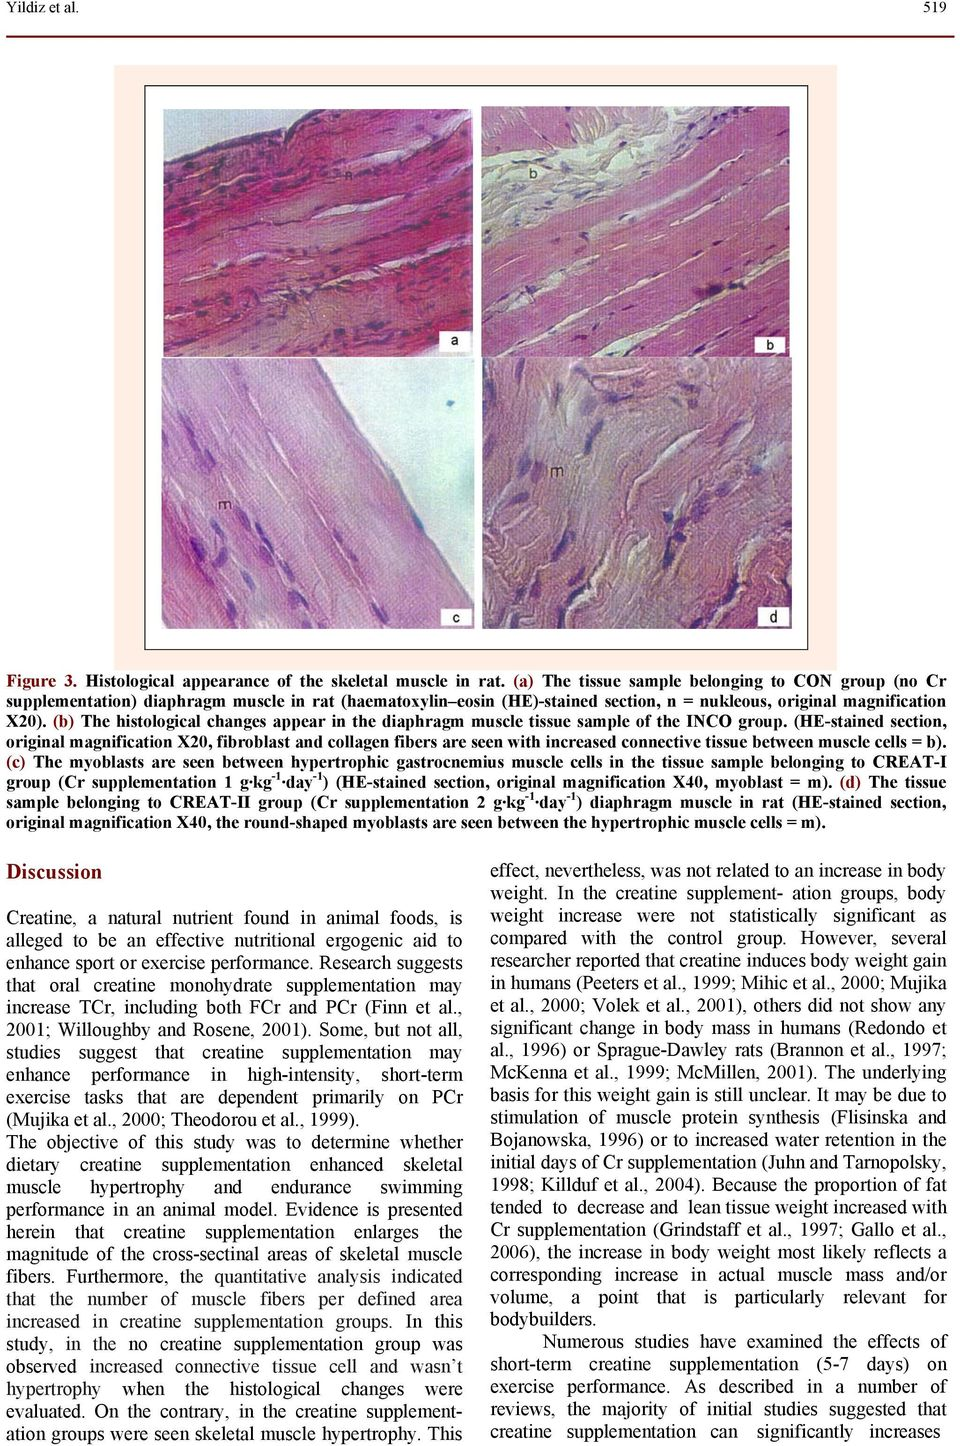 (b) The histological changes appear in the diaphragm muscle tissue sample of the INCO group.